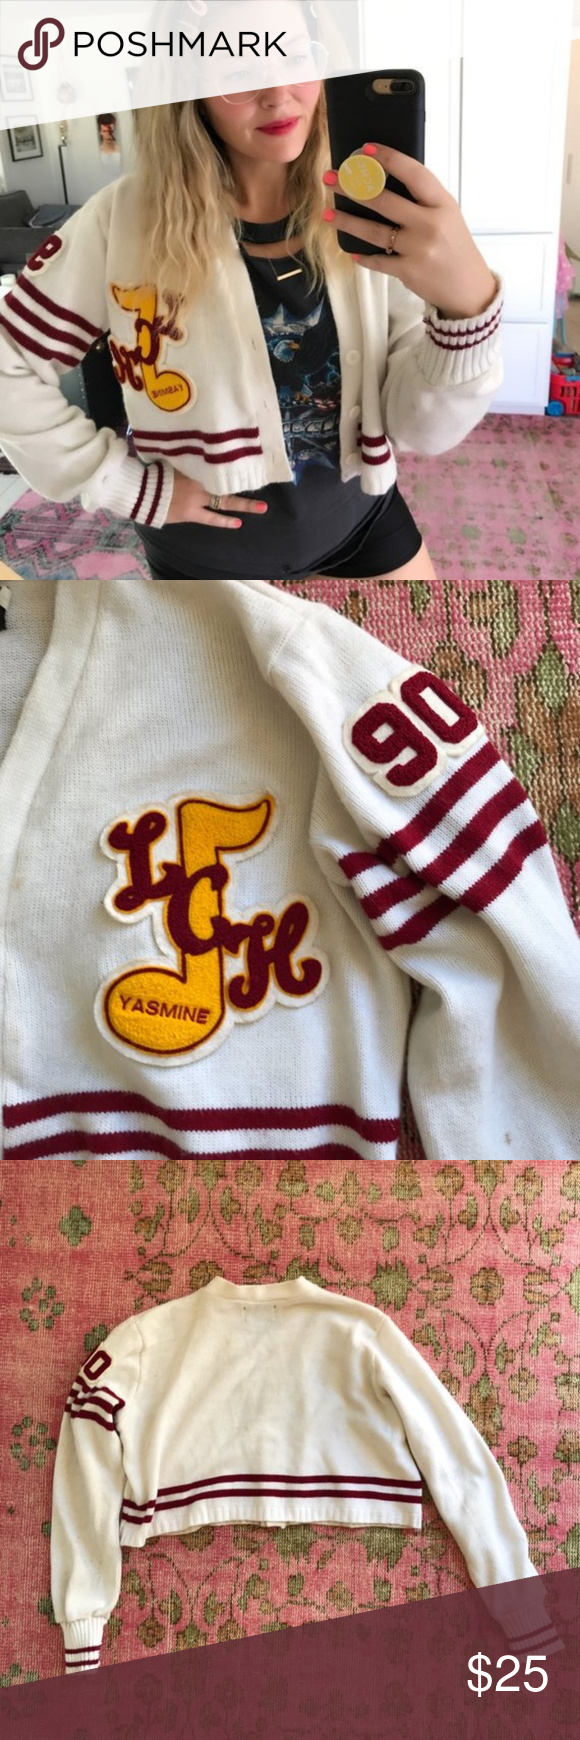 Vintage Varsity Cheerleader Sweater Jasmine The cutest sweater! It's cropped and has patches. Jasmine and number 90.  Label- Dehen Knitting Portland Made In USA  Size- Large  18 inches long  26 inch-sleeve   Condition- Some spots and stains but it's so cute who cares!  All sales final  Vintage sold as is Vintage Sweaters Cardigans #18inchcheerleaderclothes Vintage Varsity Cheerleader Sweater Jasmine The cutest sweater! It's cropped and has patches. Jasmine and number 90.  Label- Dehen Knit #18inchcheerleaderclothes